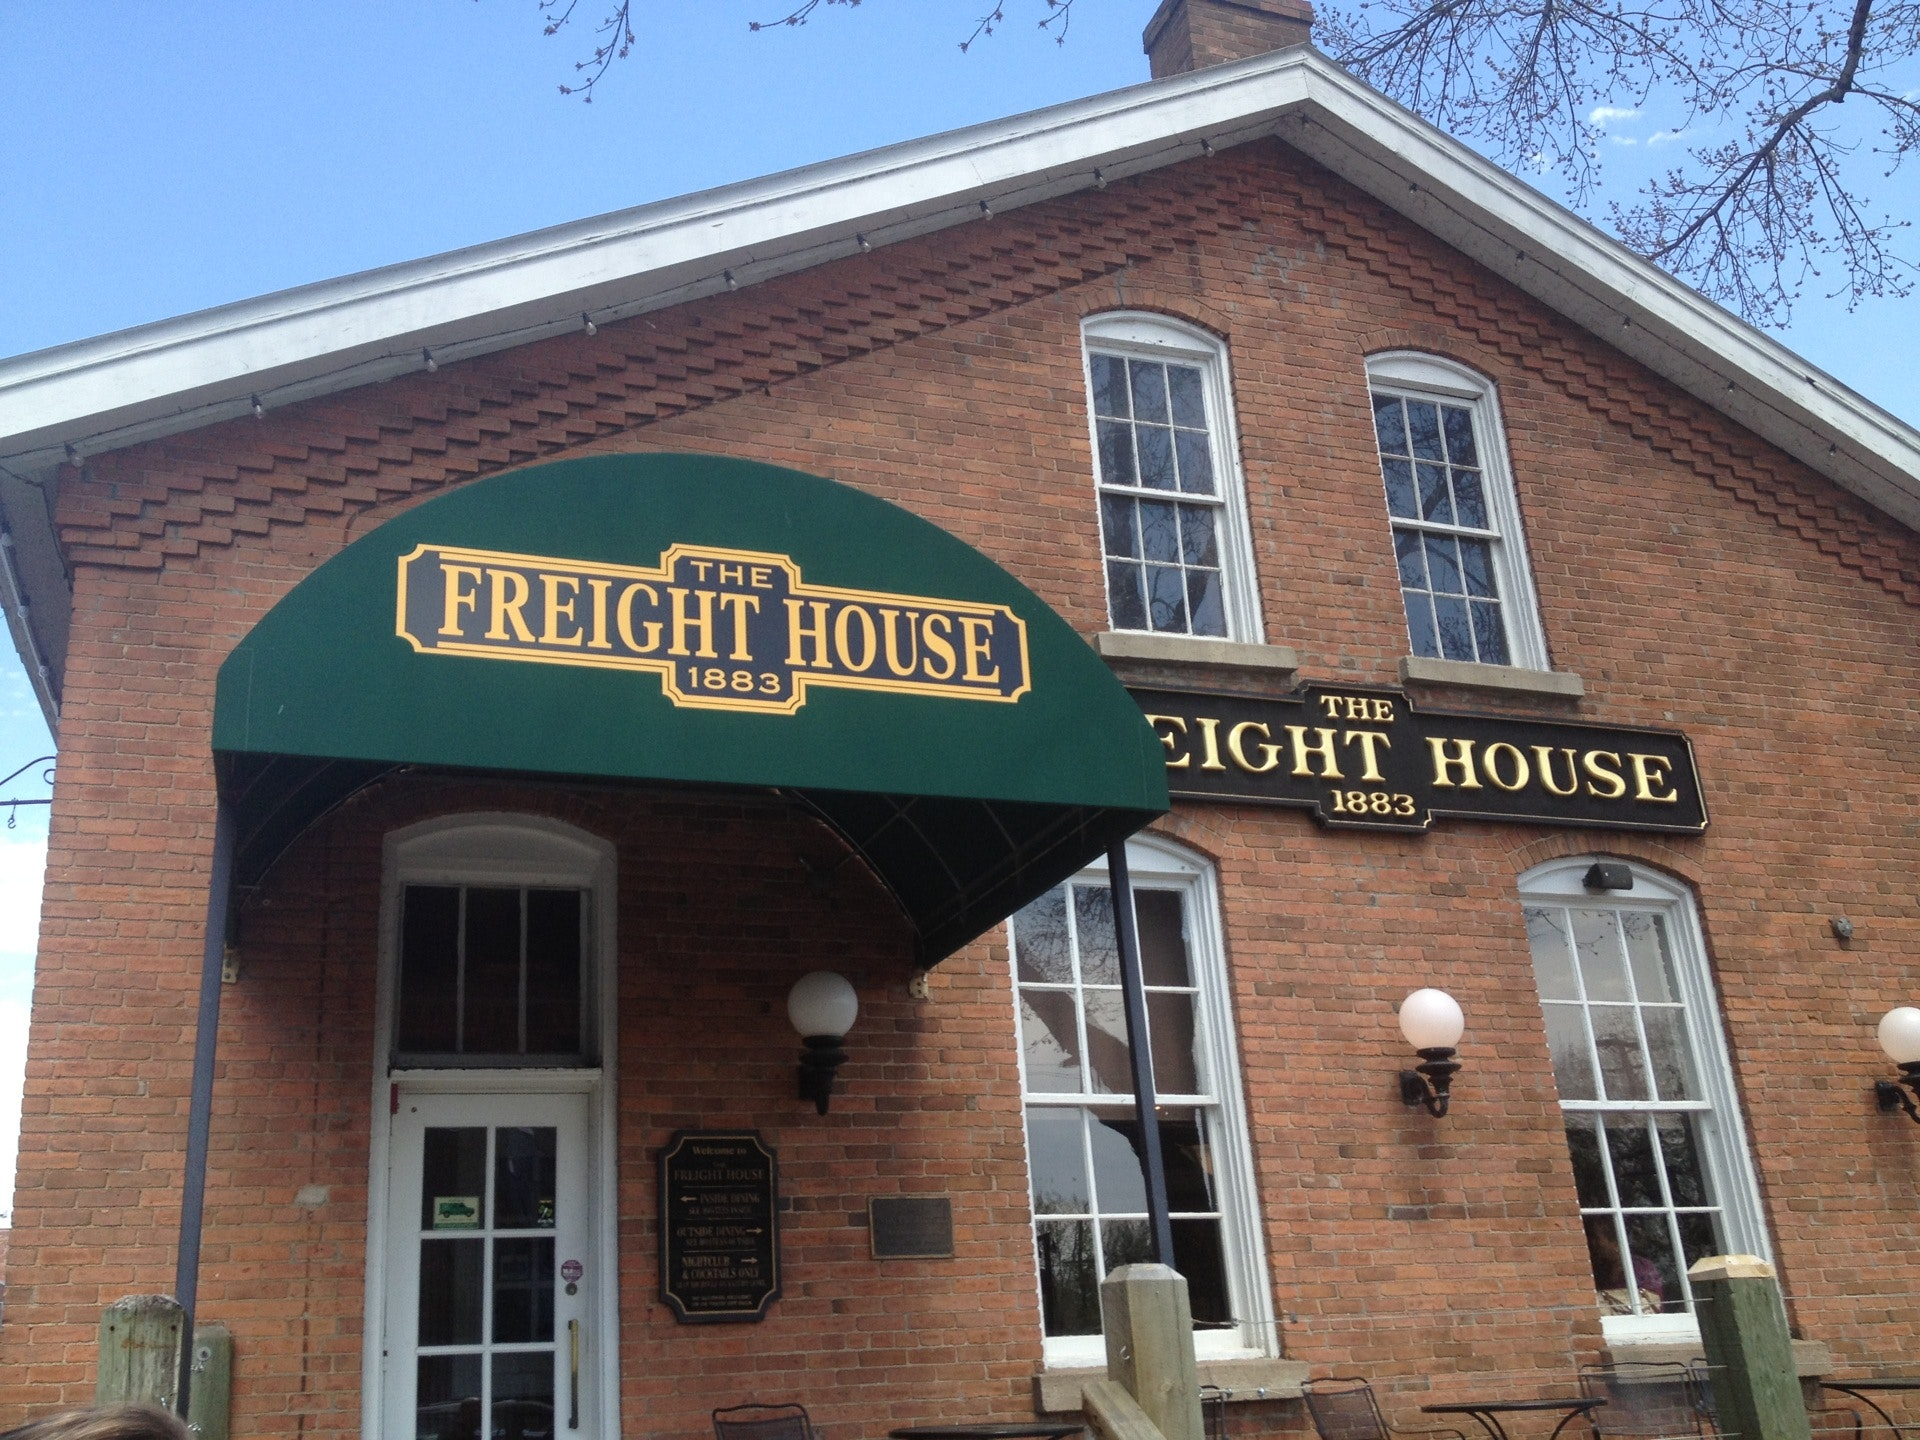 Freight House image 0